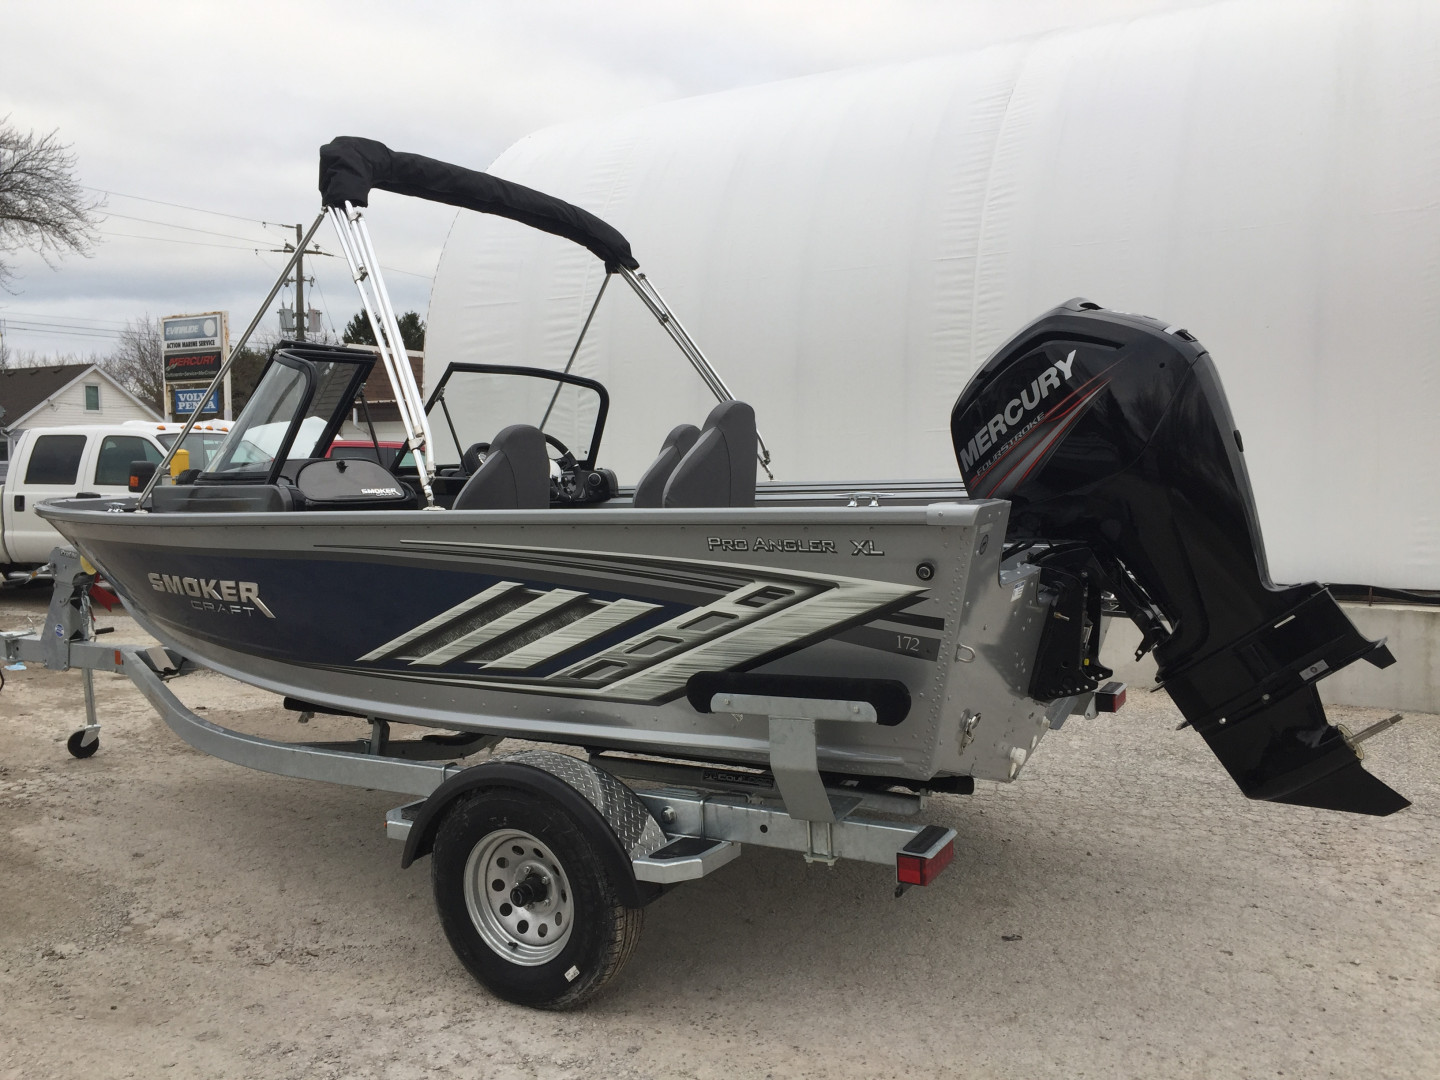 SOLD  2021 172 PRO ANGLER XL